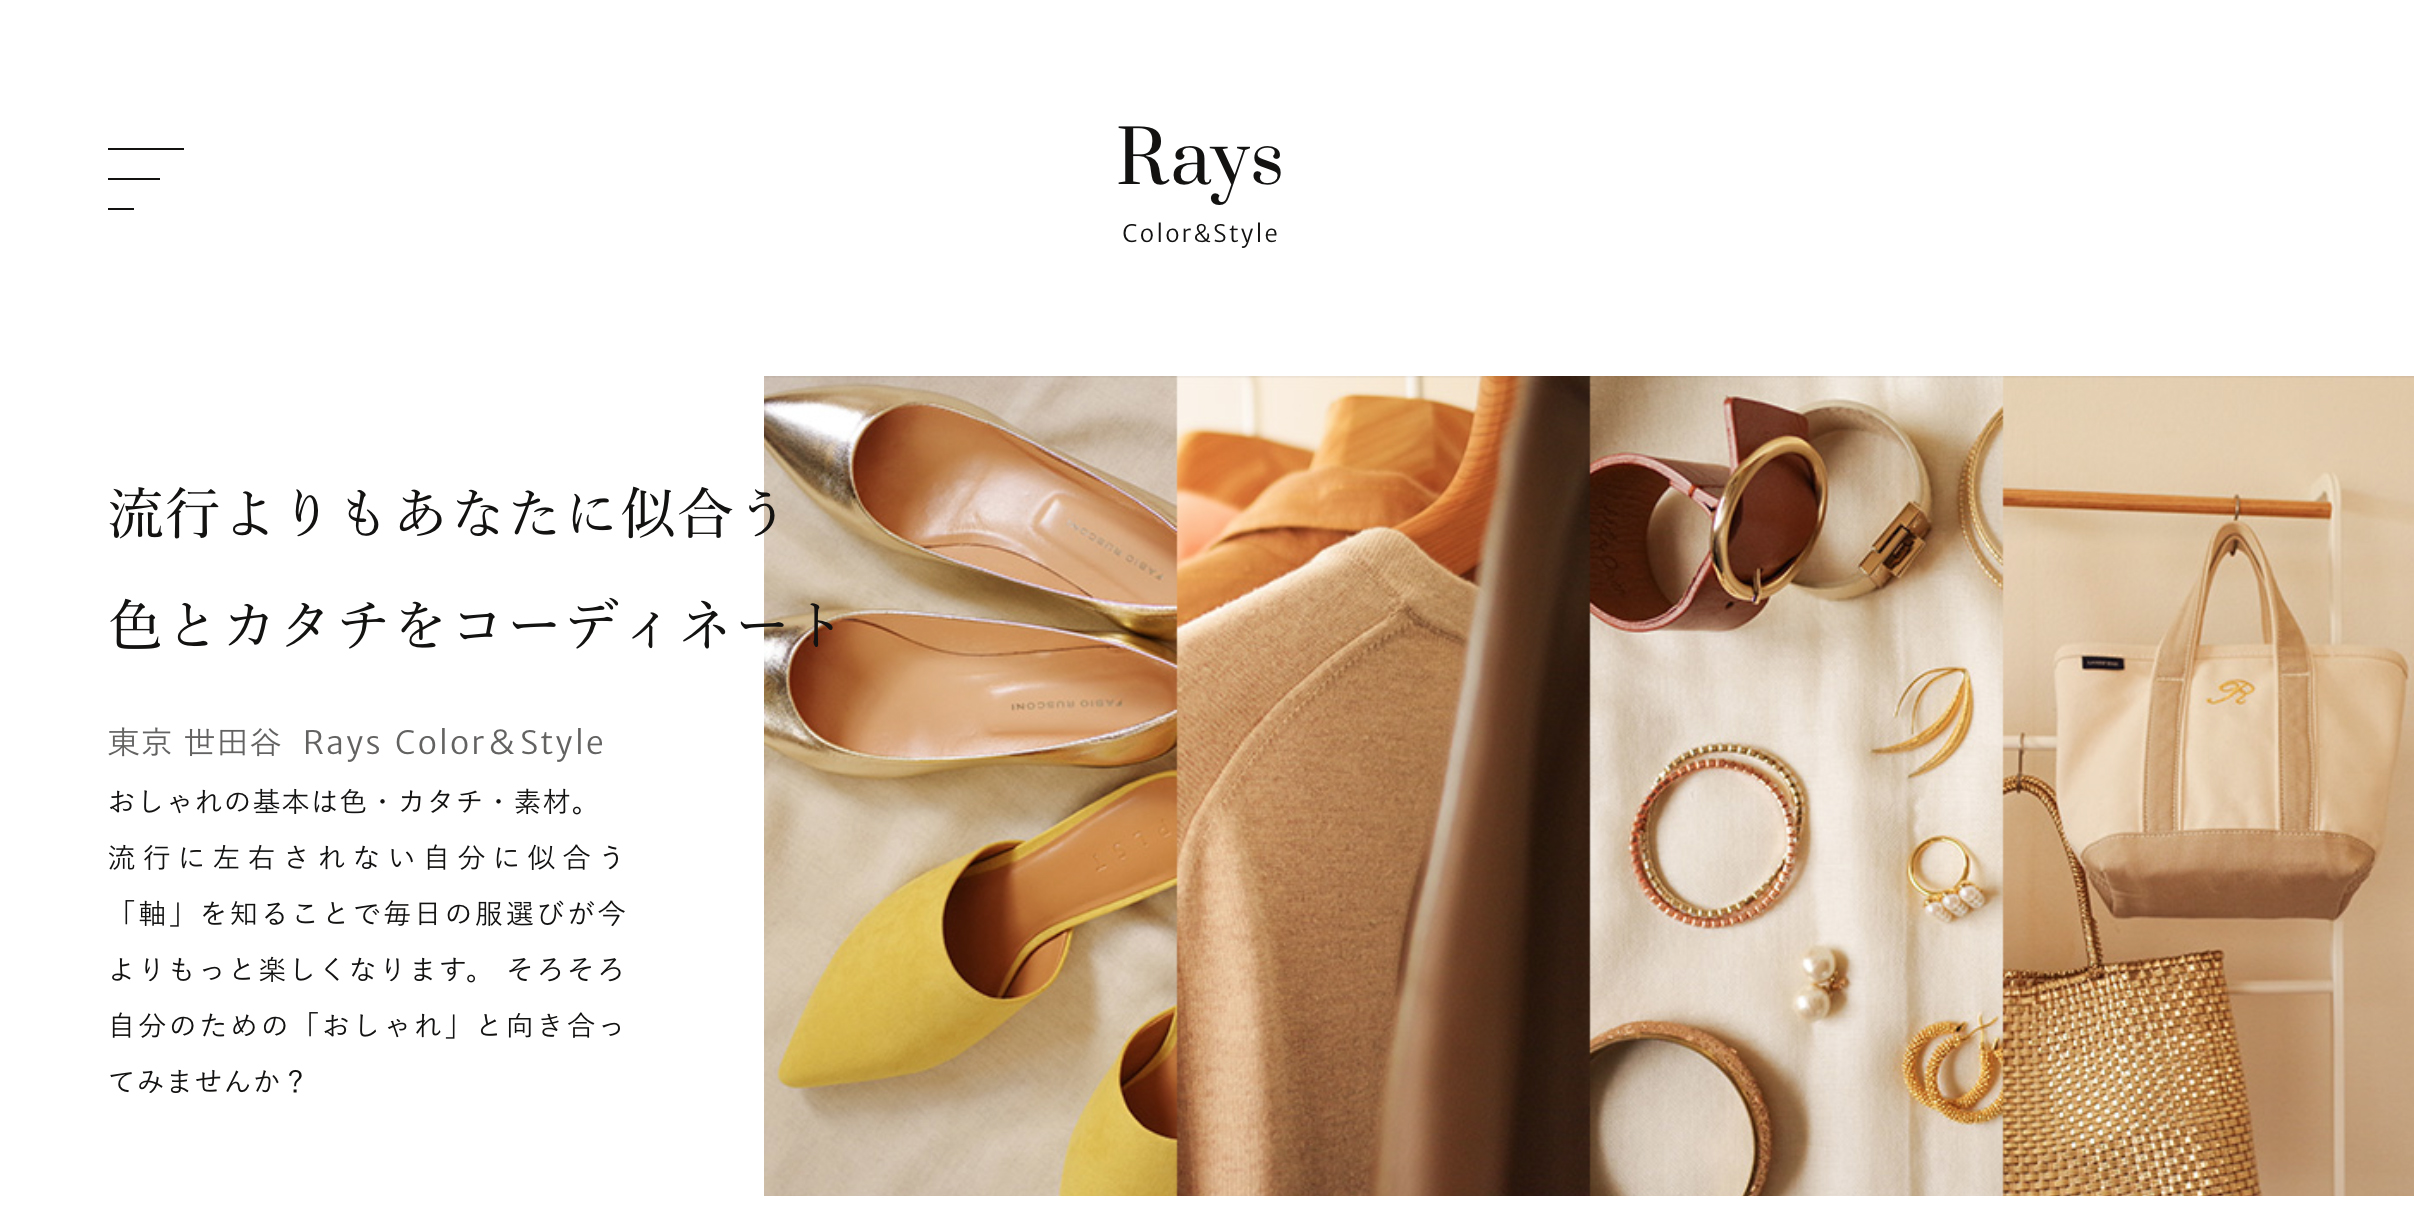 Rays coloe&style Web site